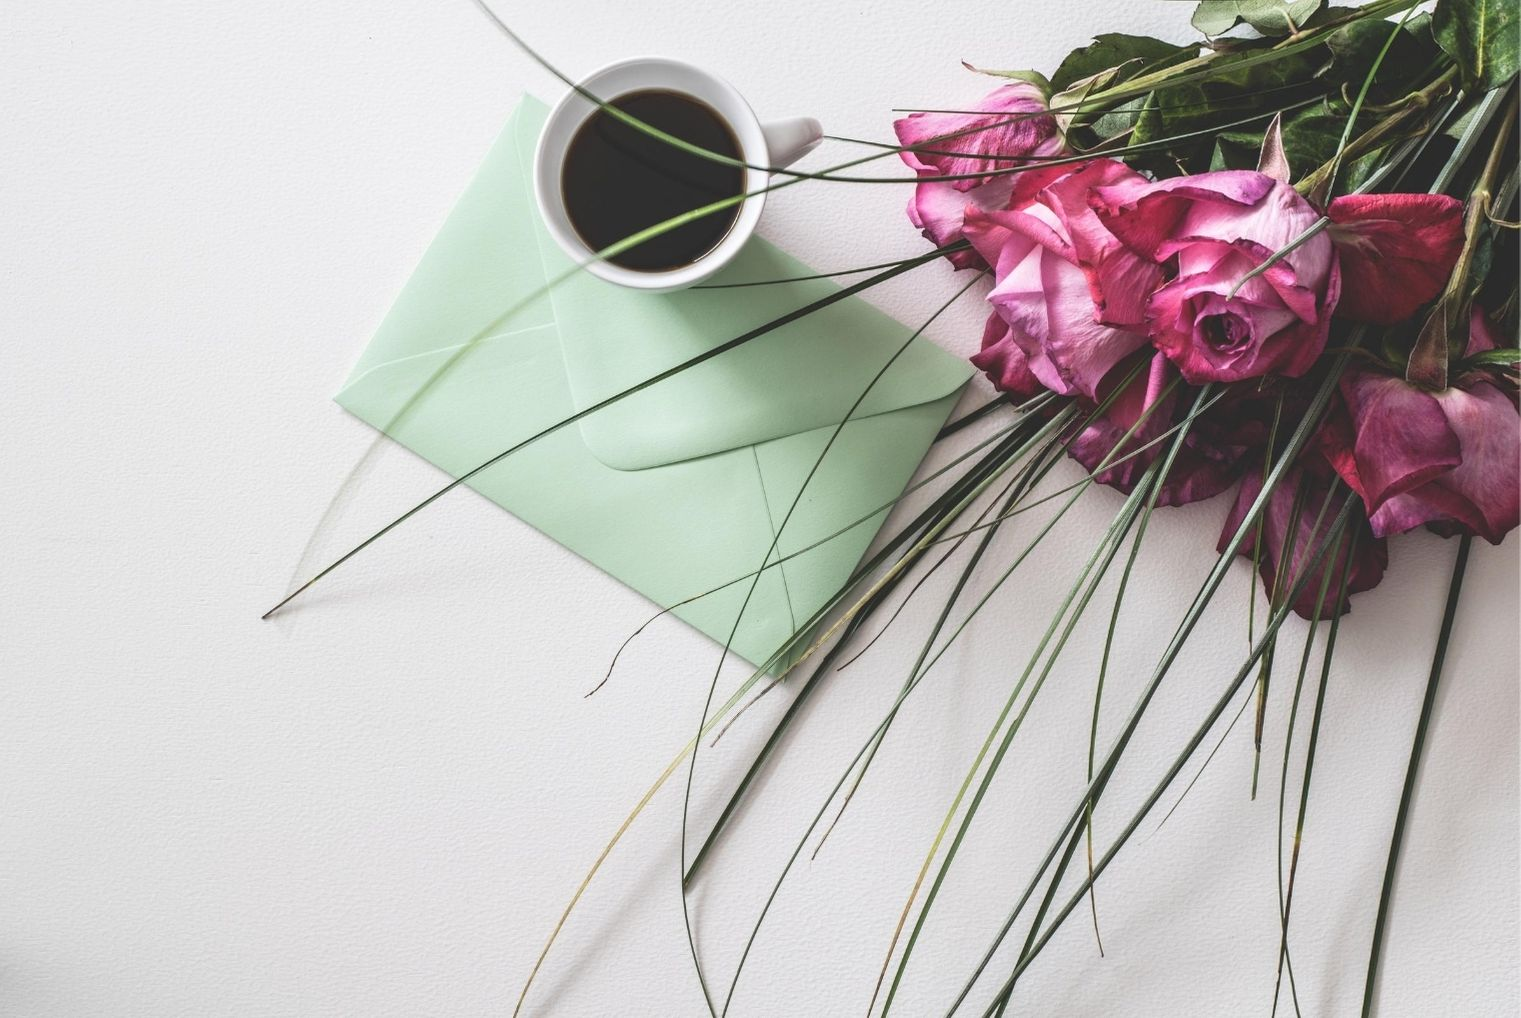 Flowers and envelope with coffee mug, receiving gifts